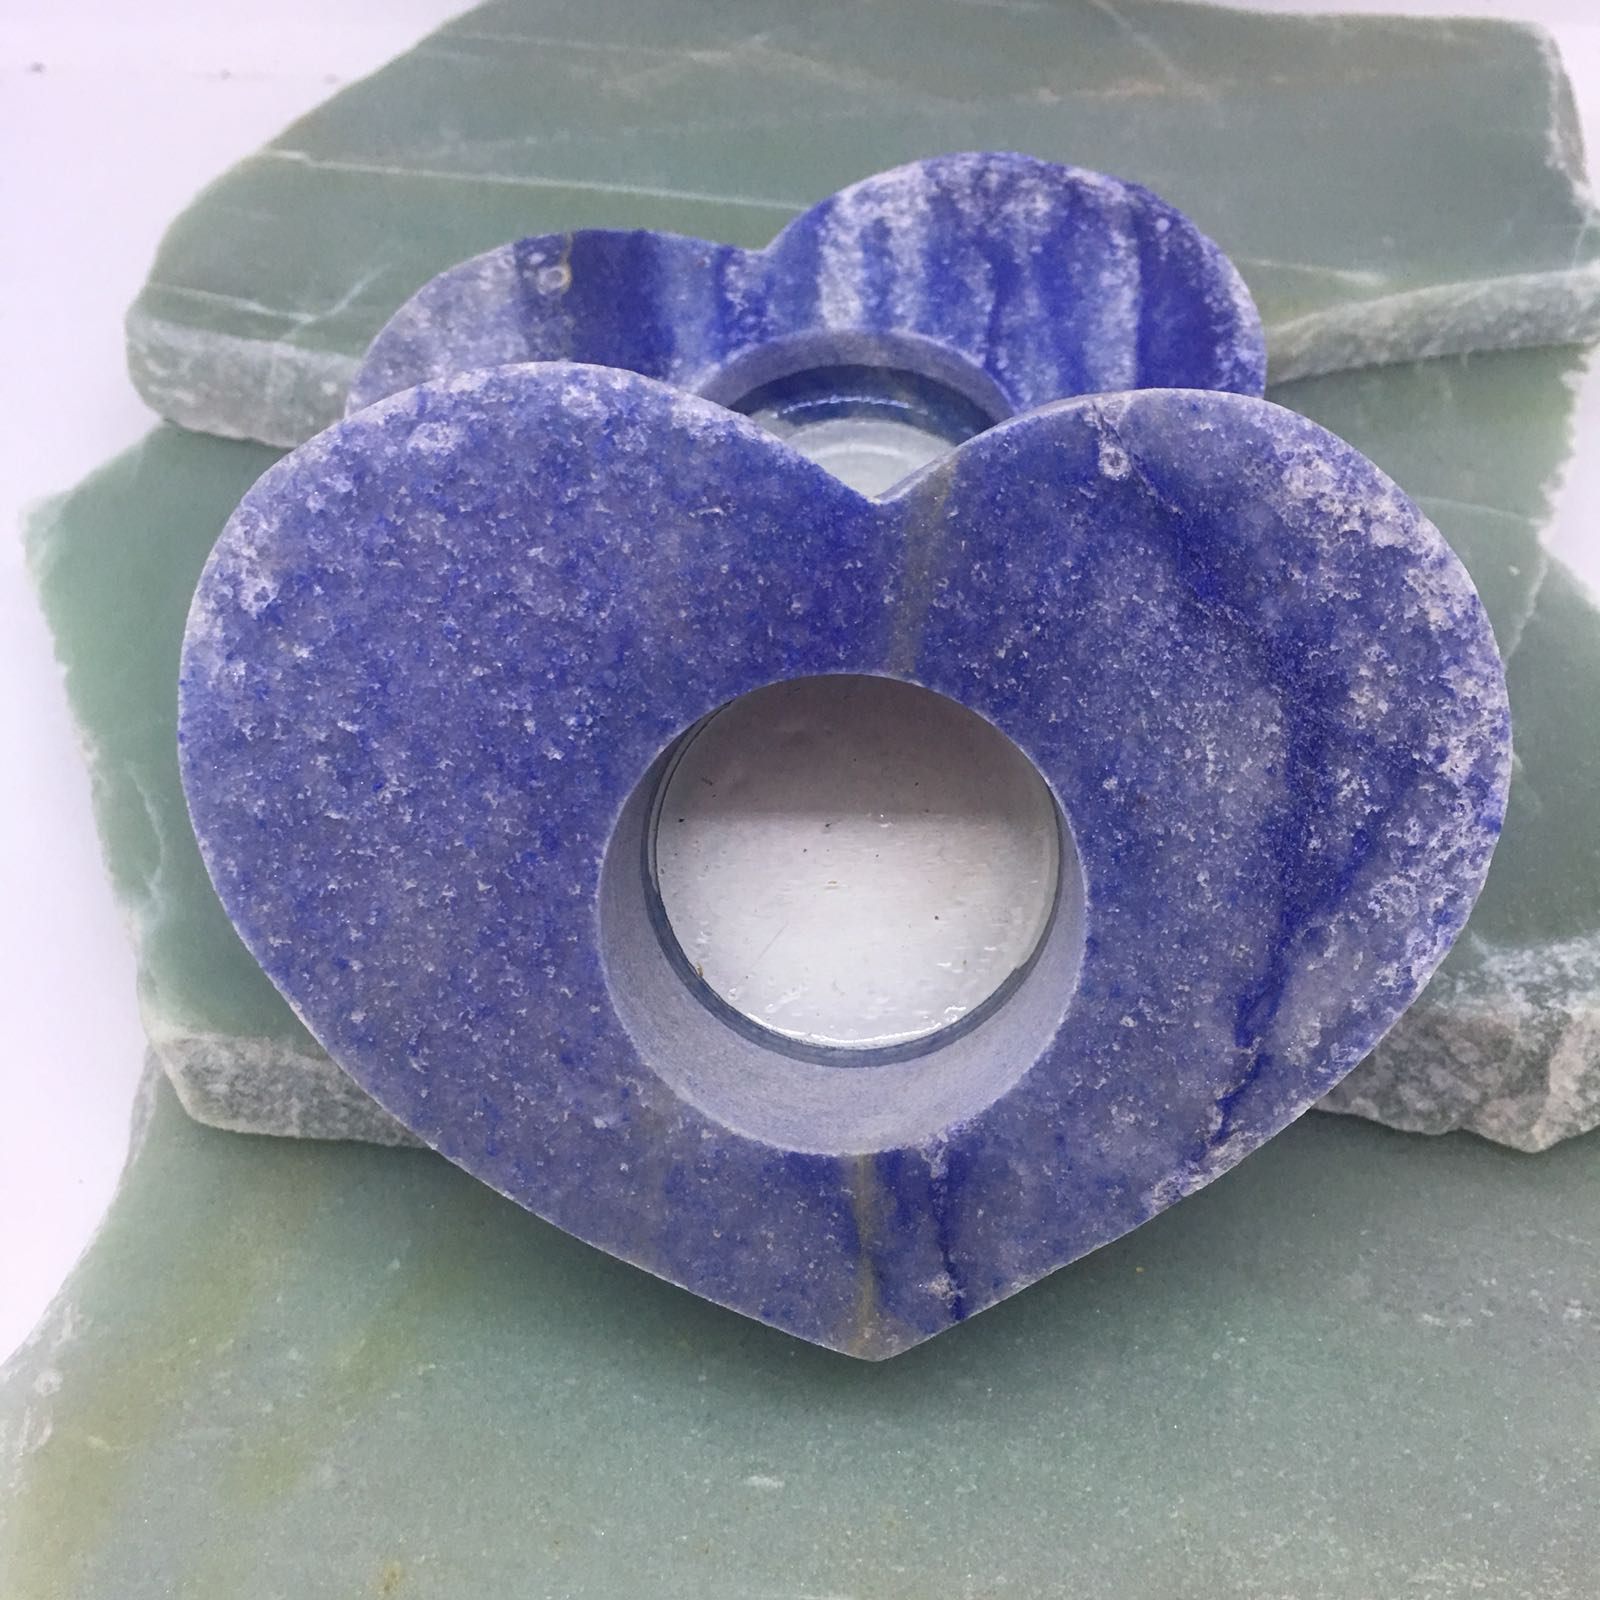 Stones from Uruguay - Blue Quartz Heart Candle Holder